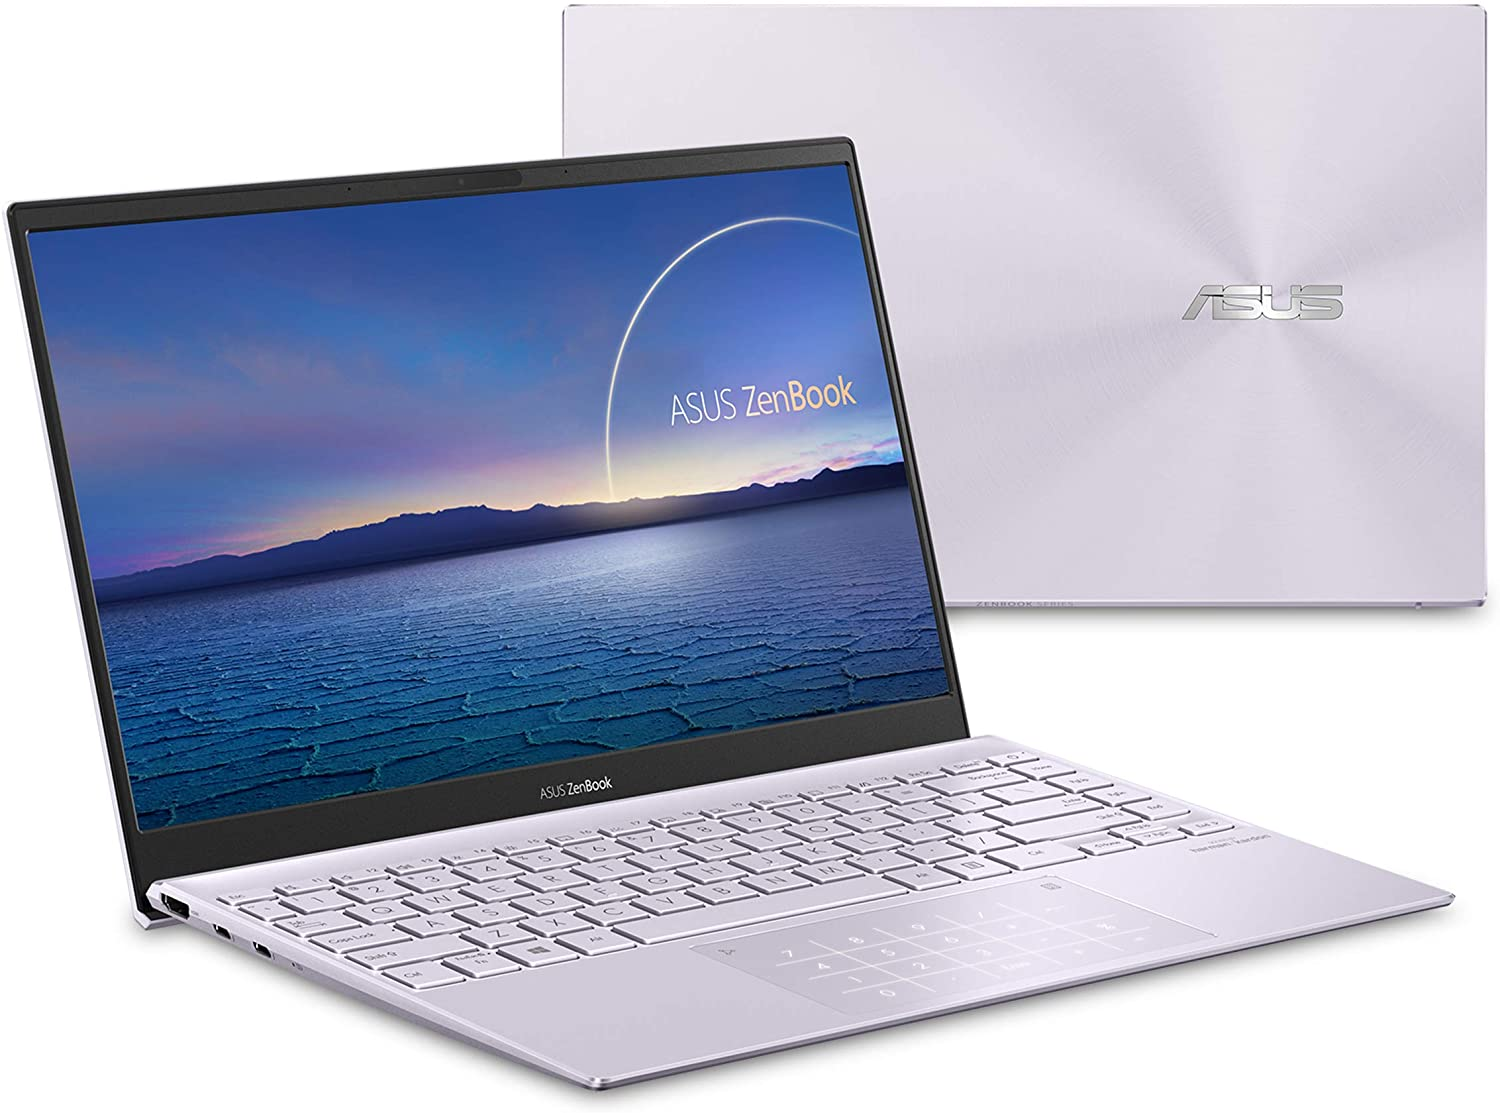 asus zenbook 13 laptop, best small laptops of 2021